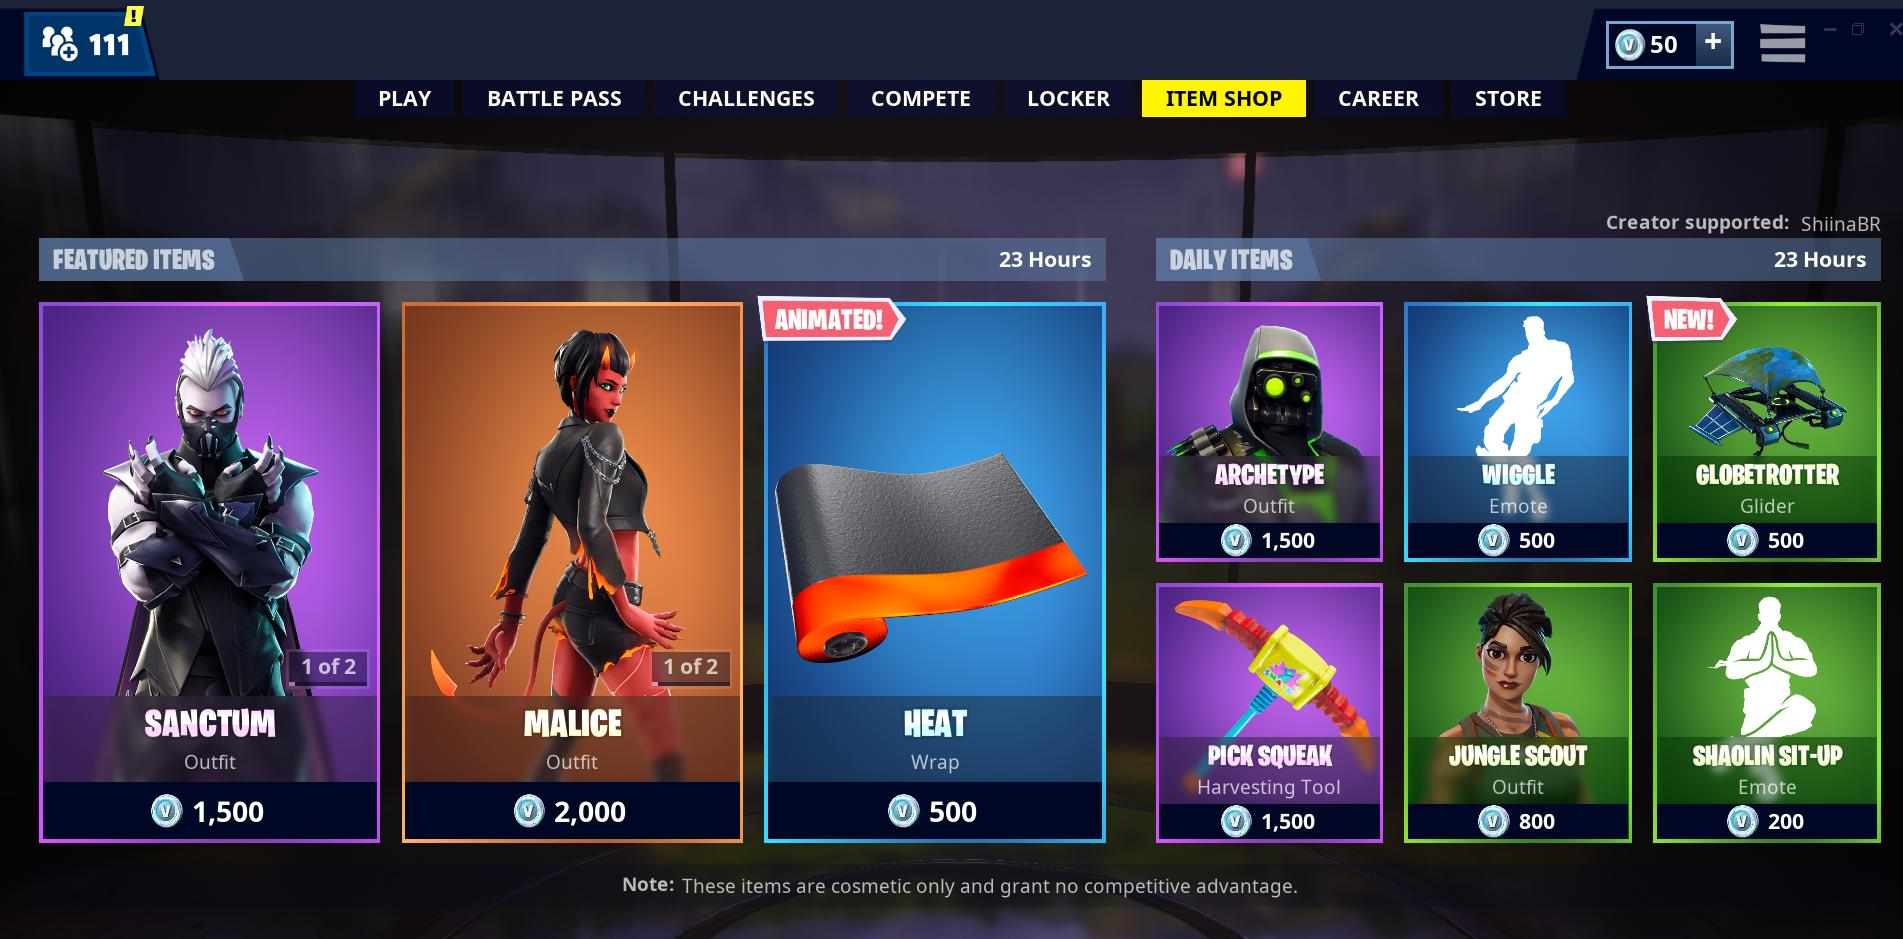 Shiinabr Fortnite Leaks On Twitter New Item Shop Support A